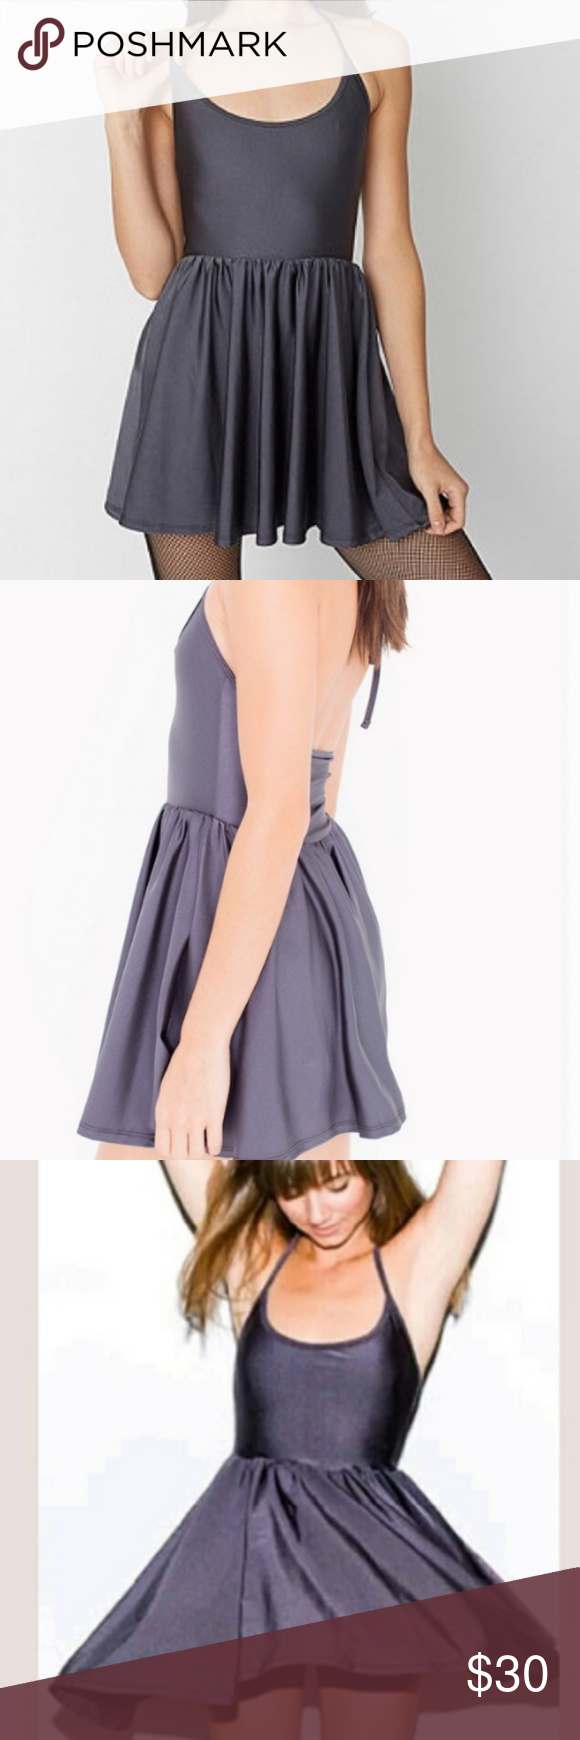 36d39cf913 American Apparel Figure Skater Dress (Dark Gray) Like new - American Apparel  Nylon Figure